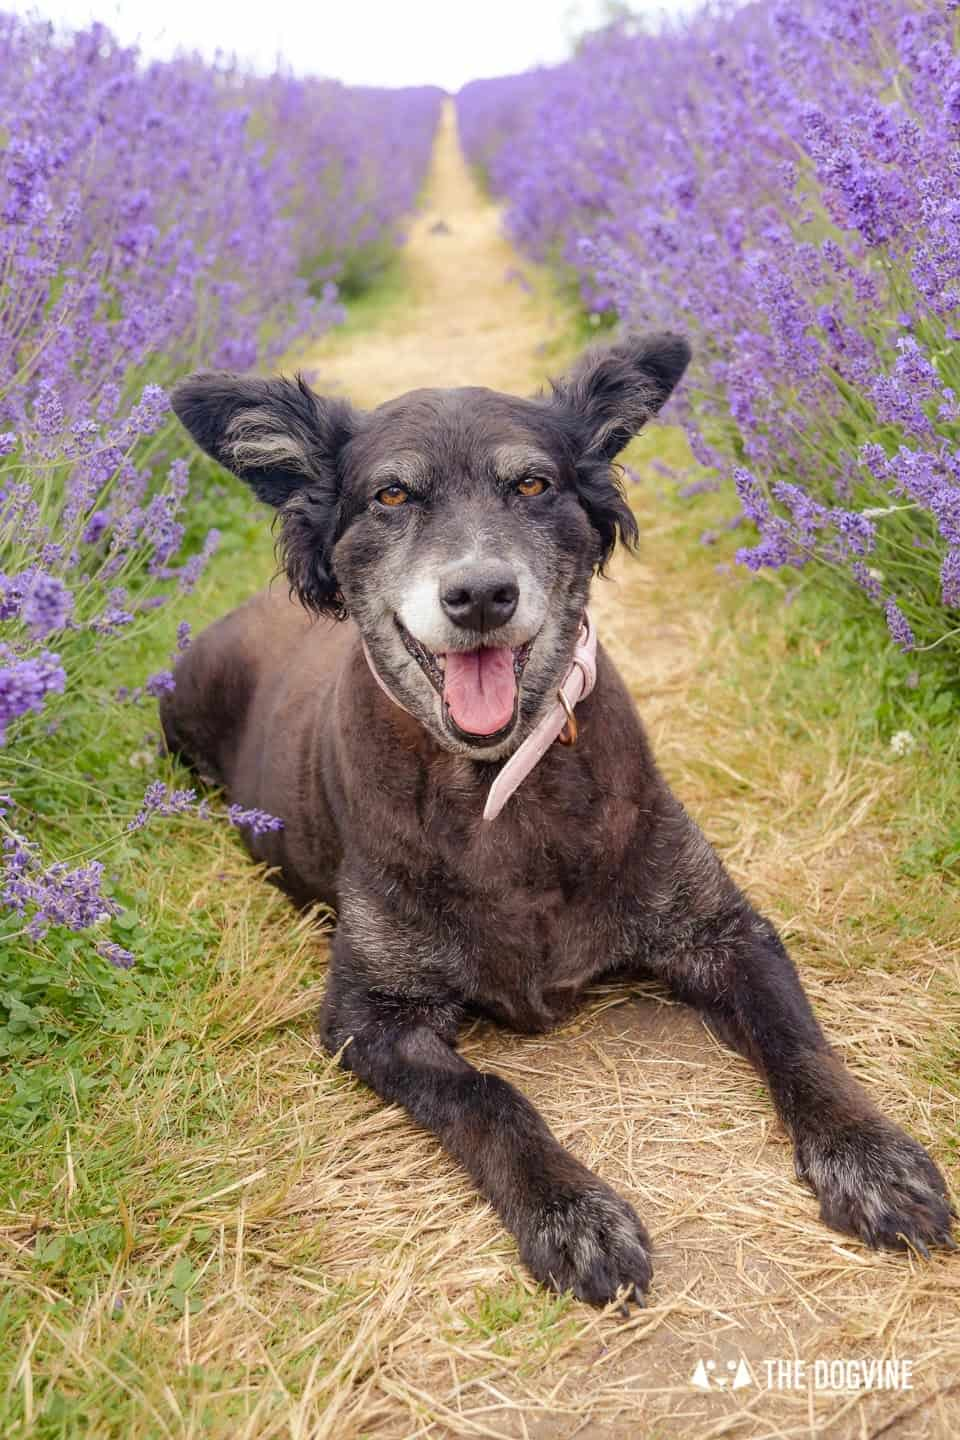 Belinha lying in the Lavender at the dog-friendly Mayfield Lavender Farm